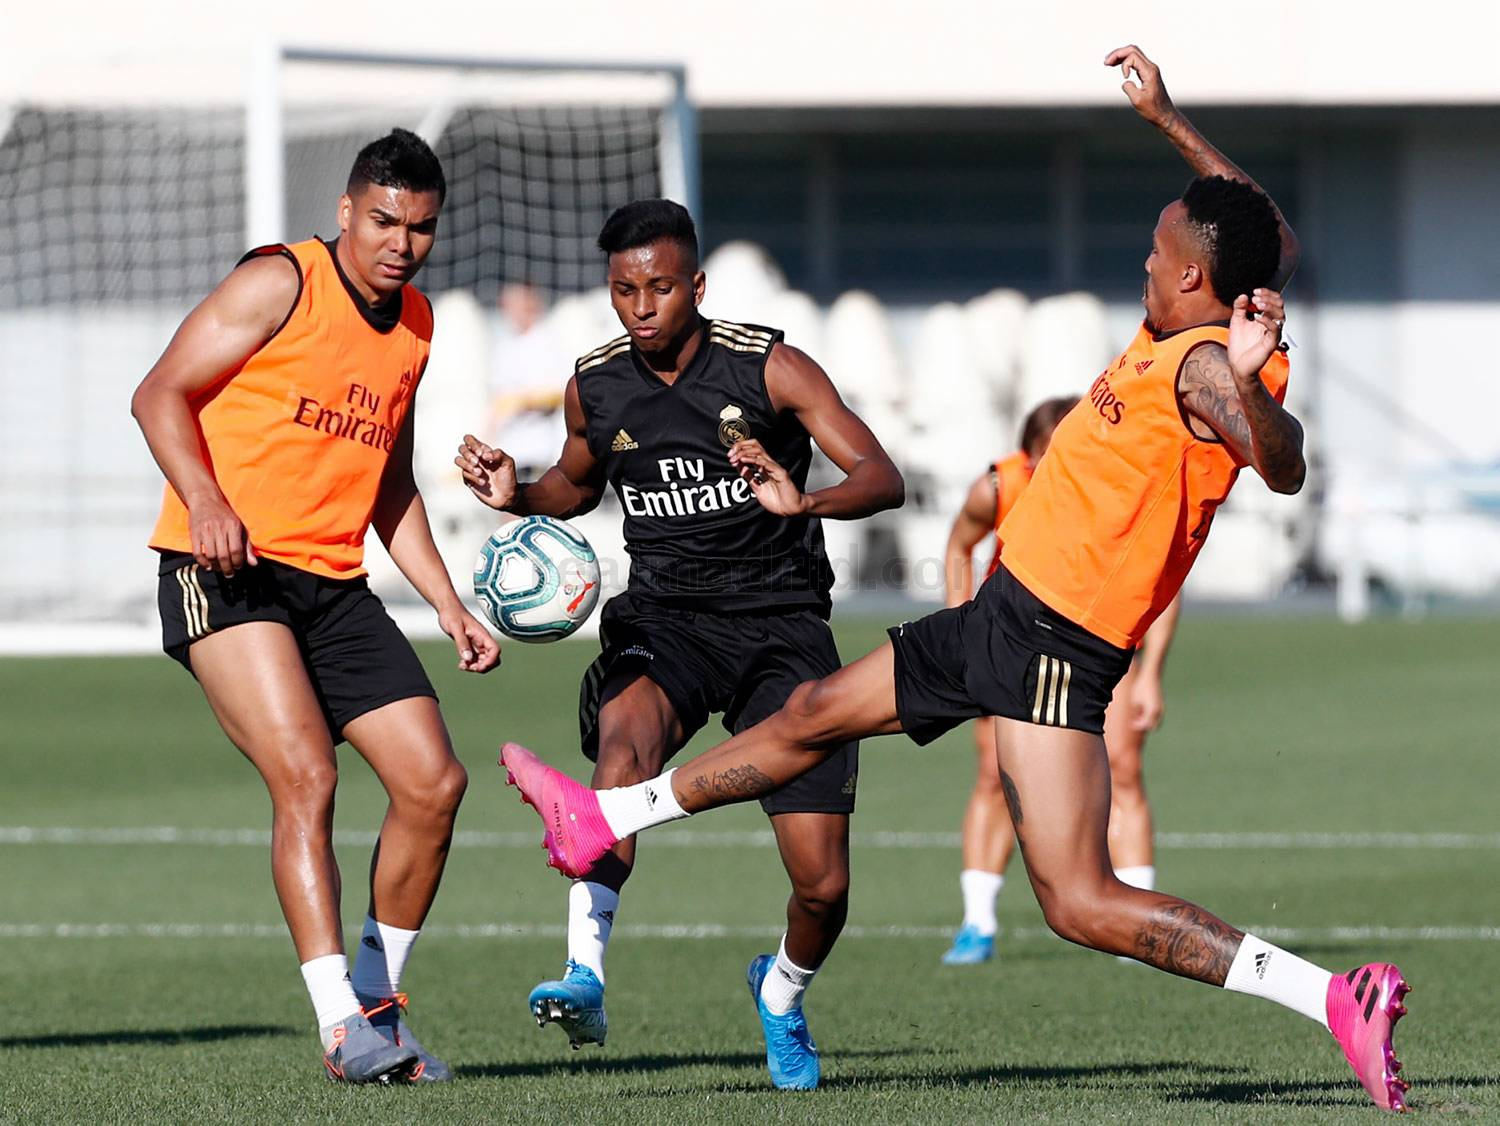 Real Madrid - Entrenamiento del Real Madrid  - 05-08-2019